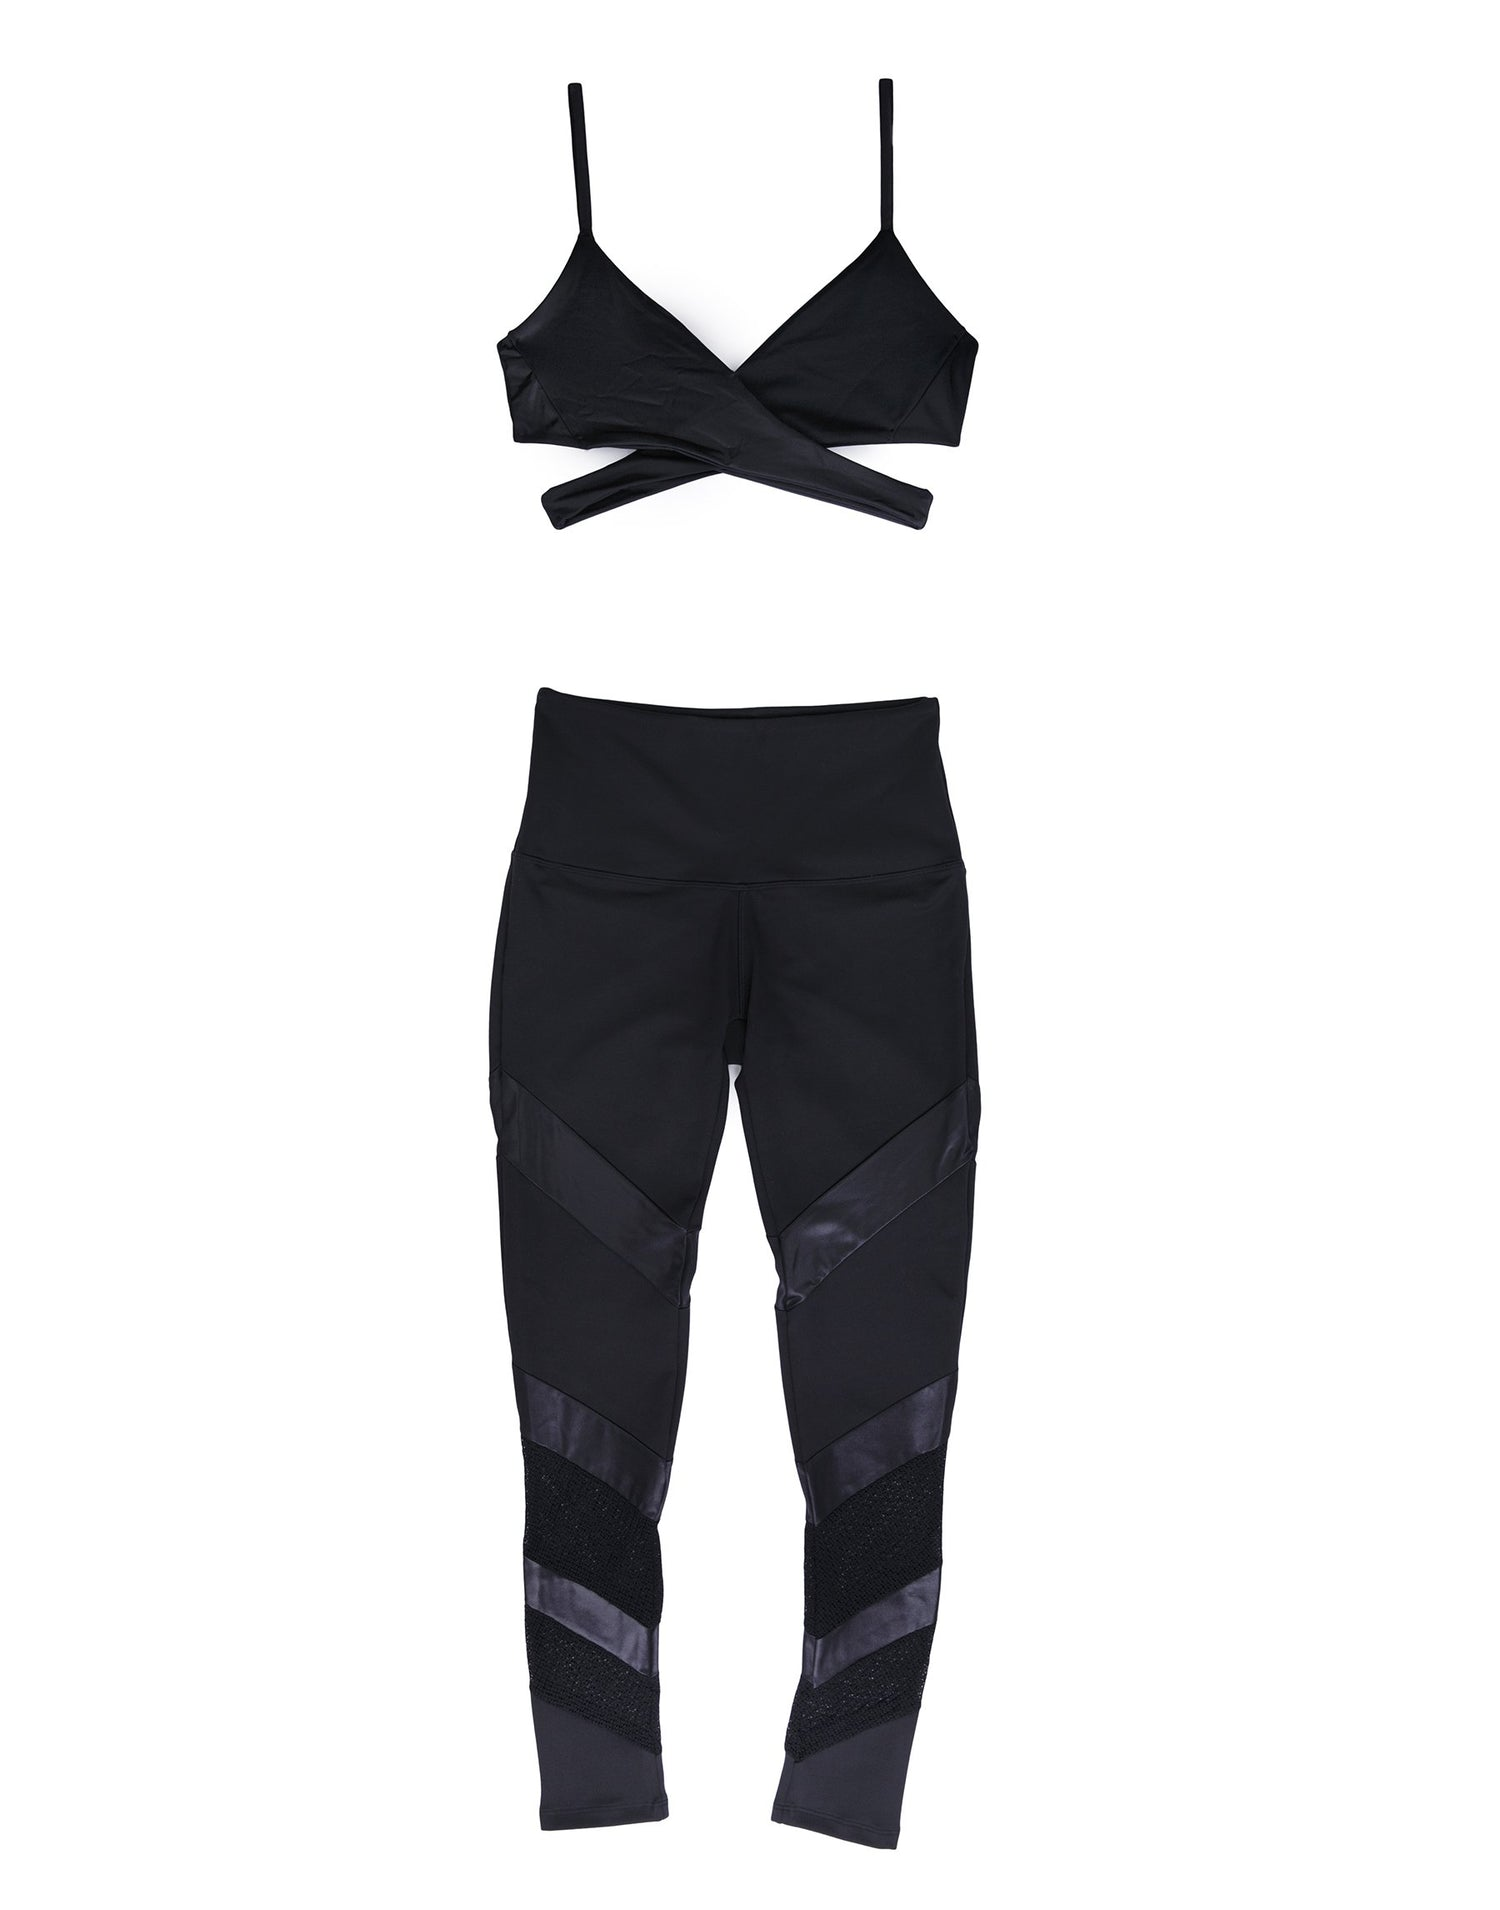 Black Sports Bra with Wrap Top Style - product view